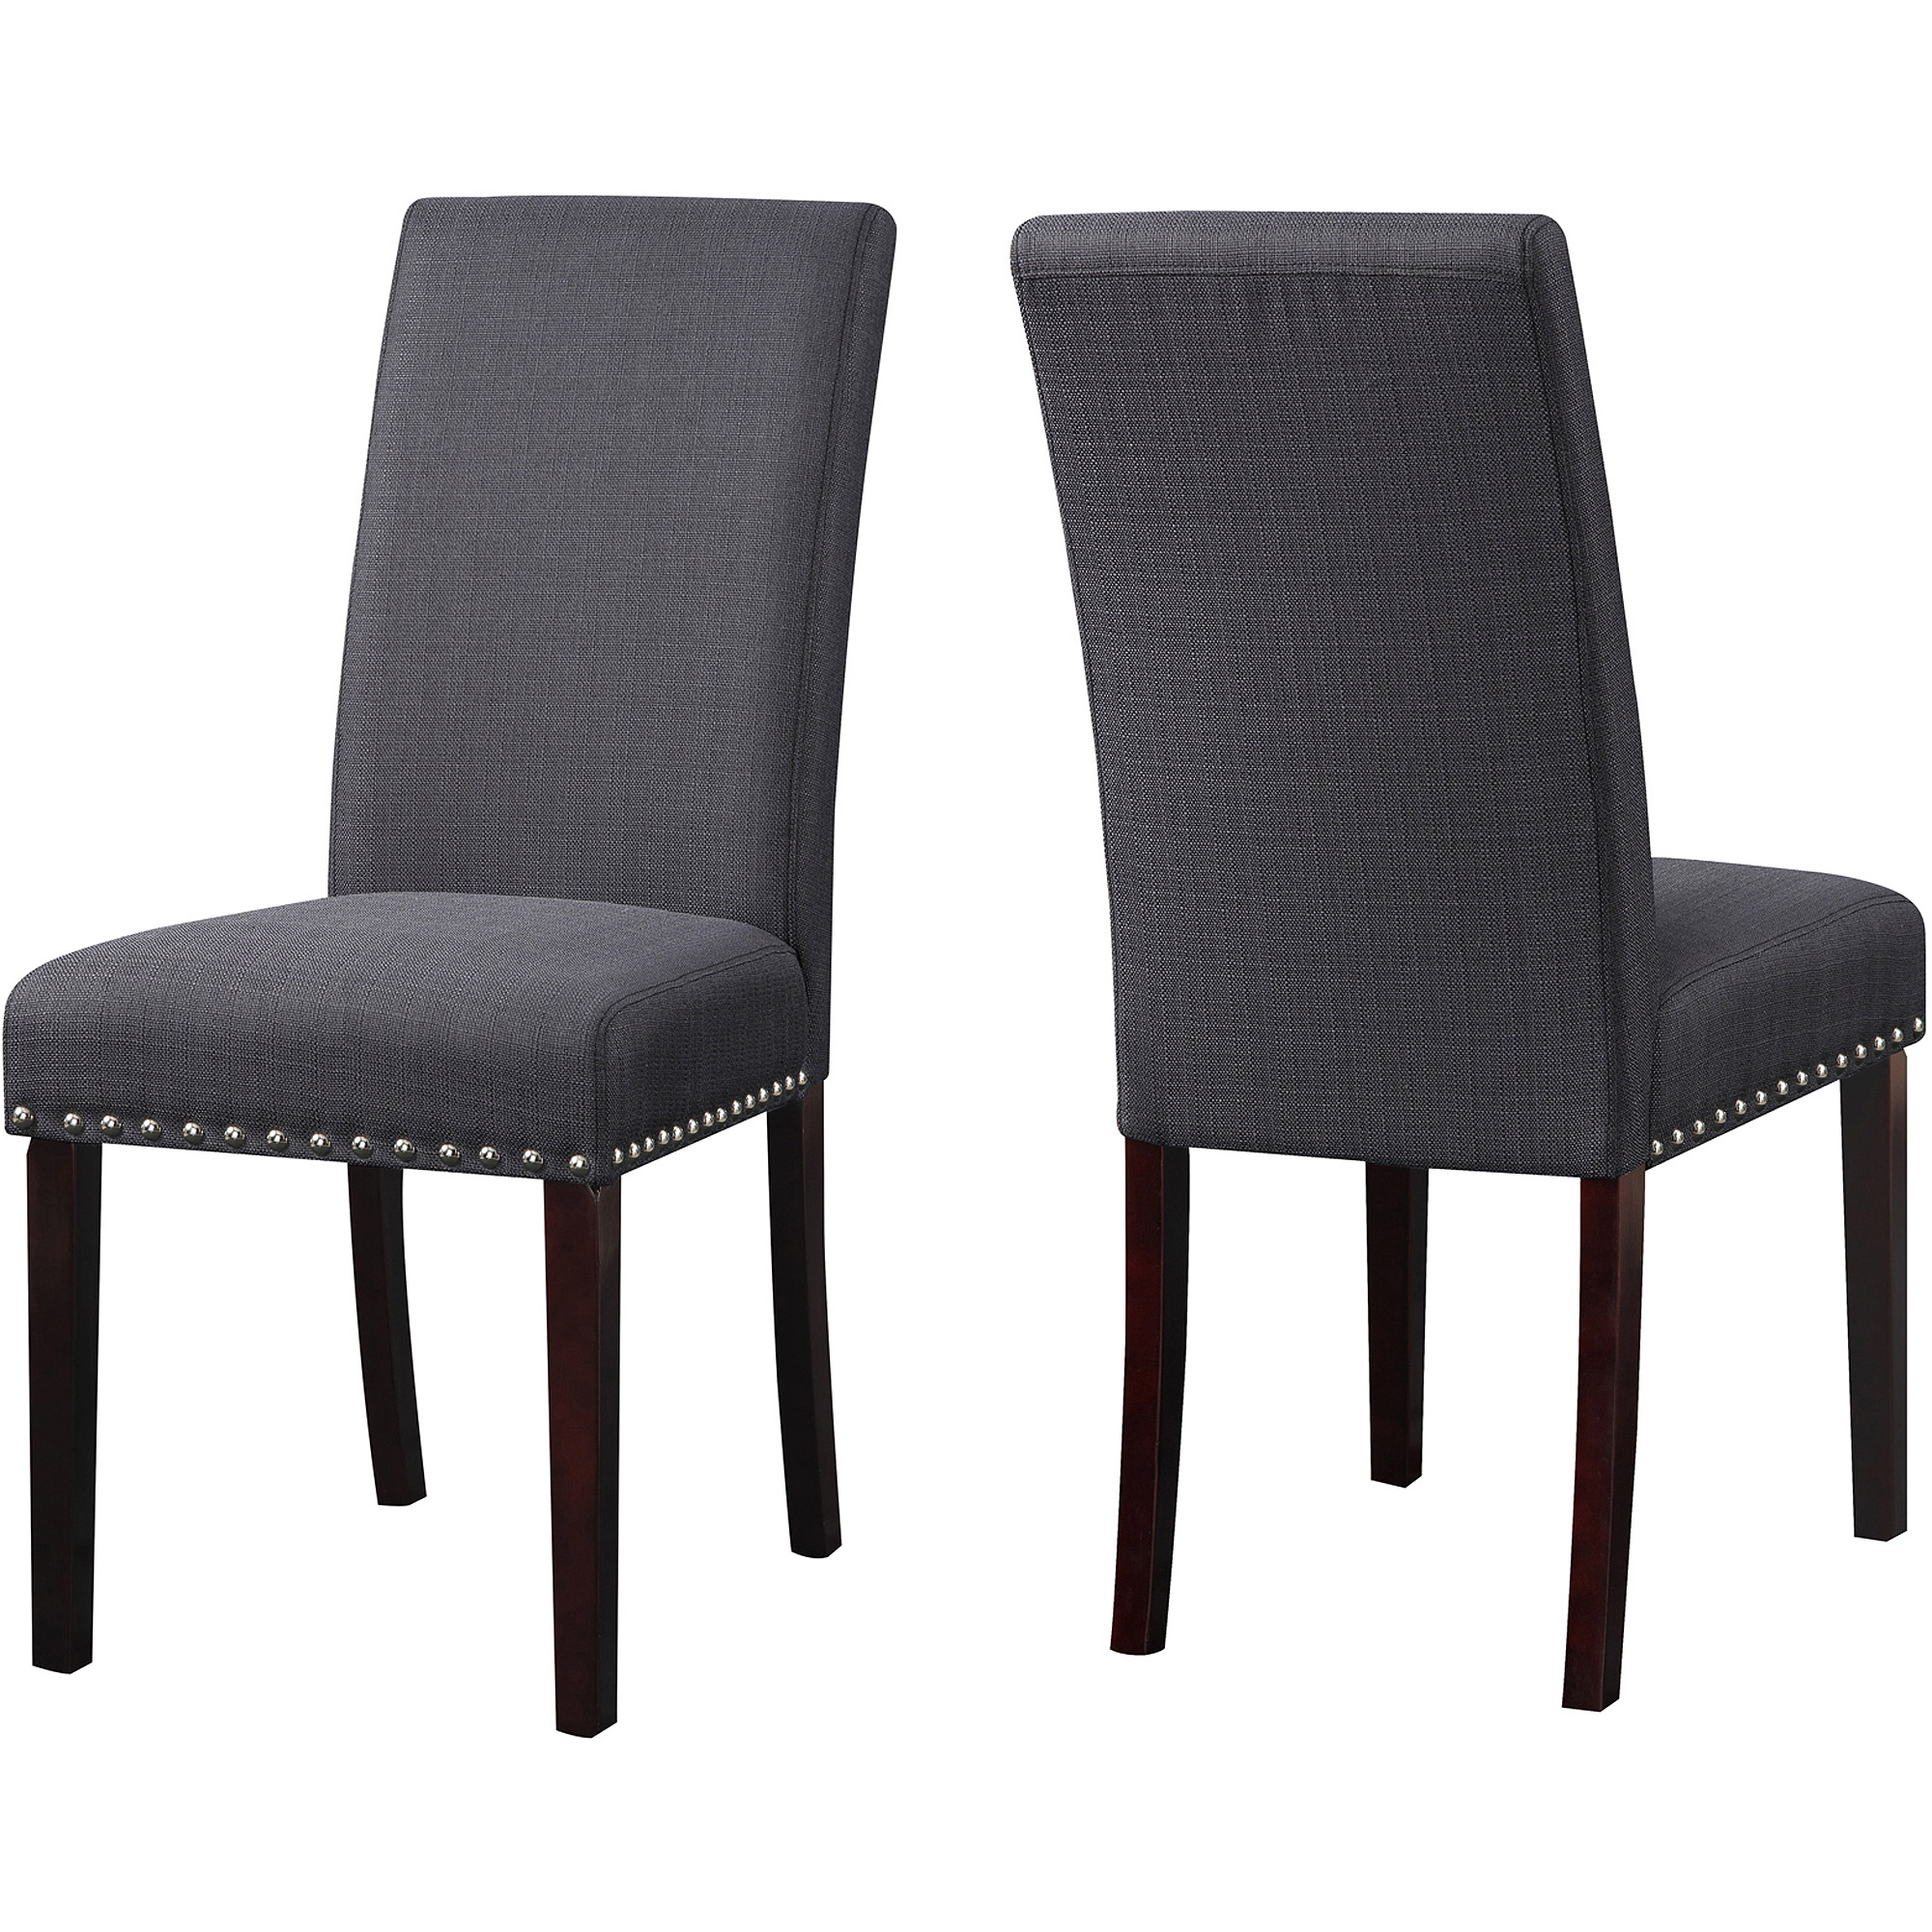 Black upholstered dining chairs - Dhi Nice Nail Head Upholstered Dining Chair Set Of 2 Multiple Colors Walmart Com